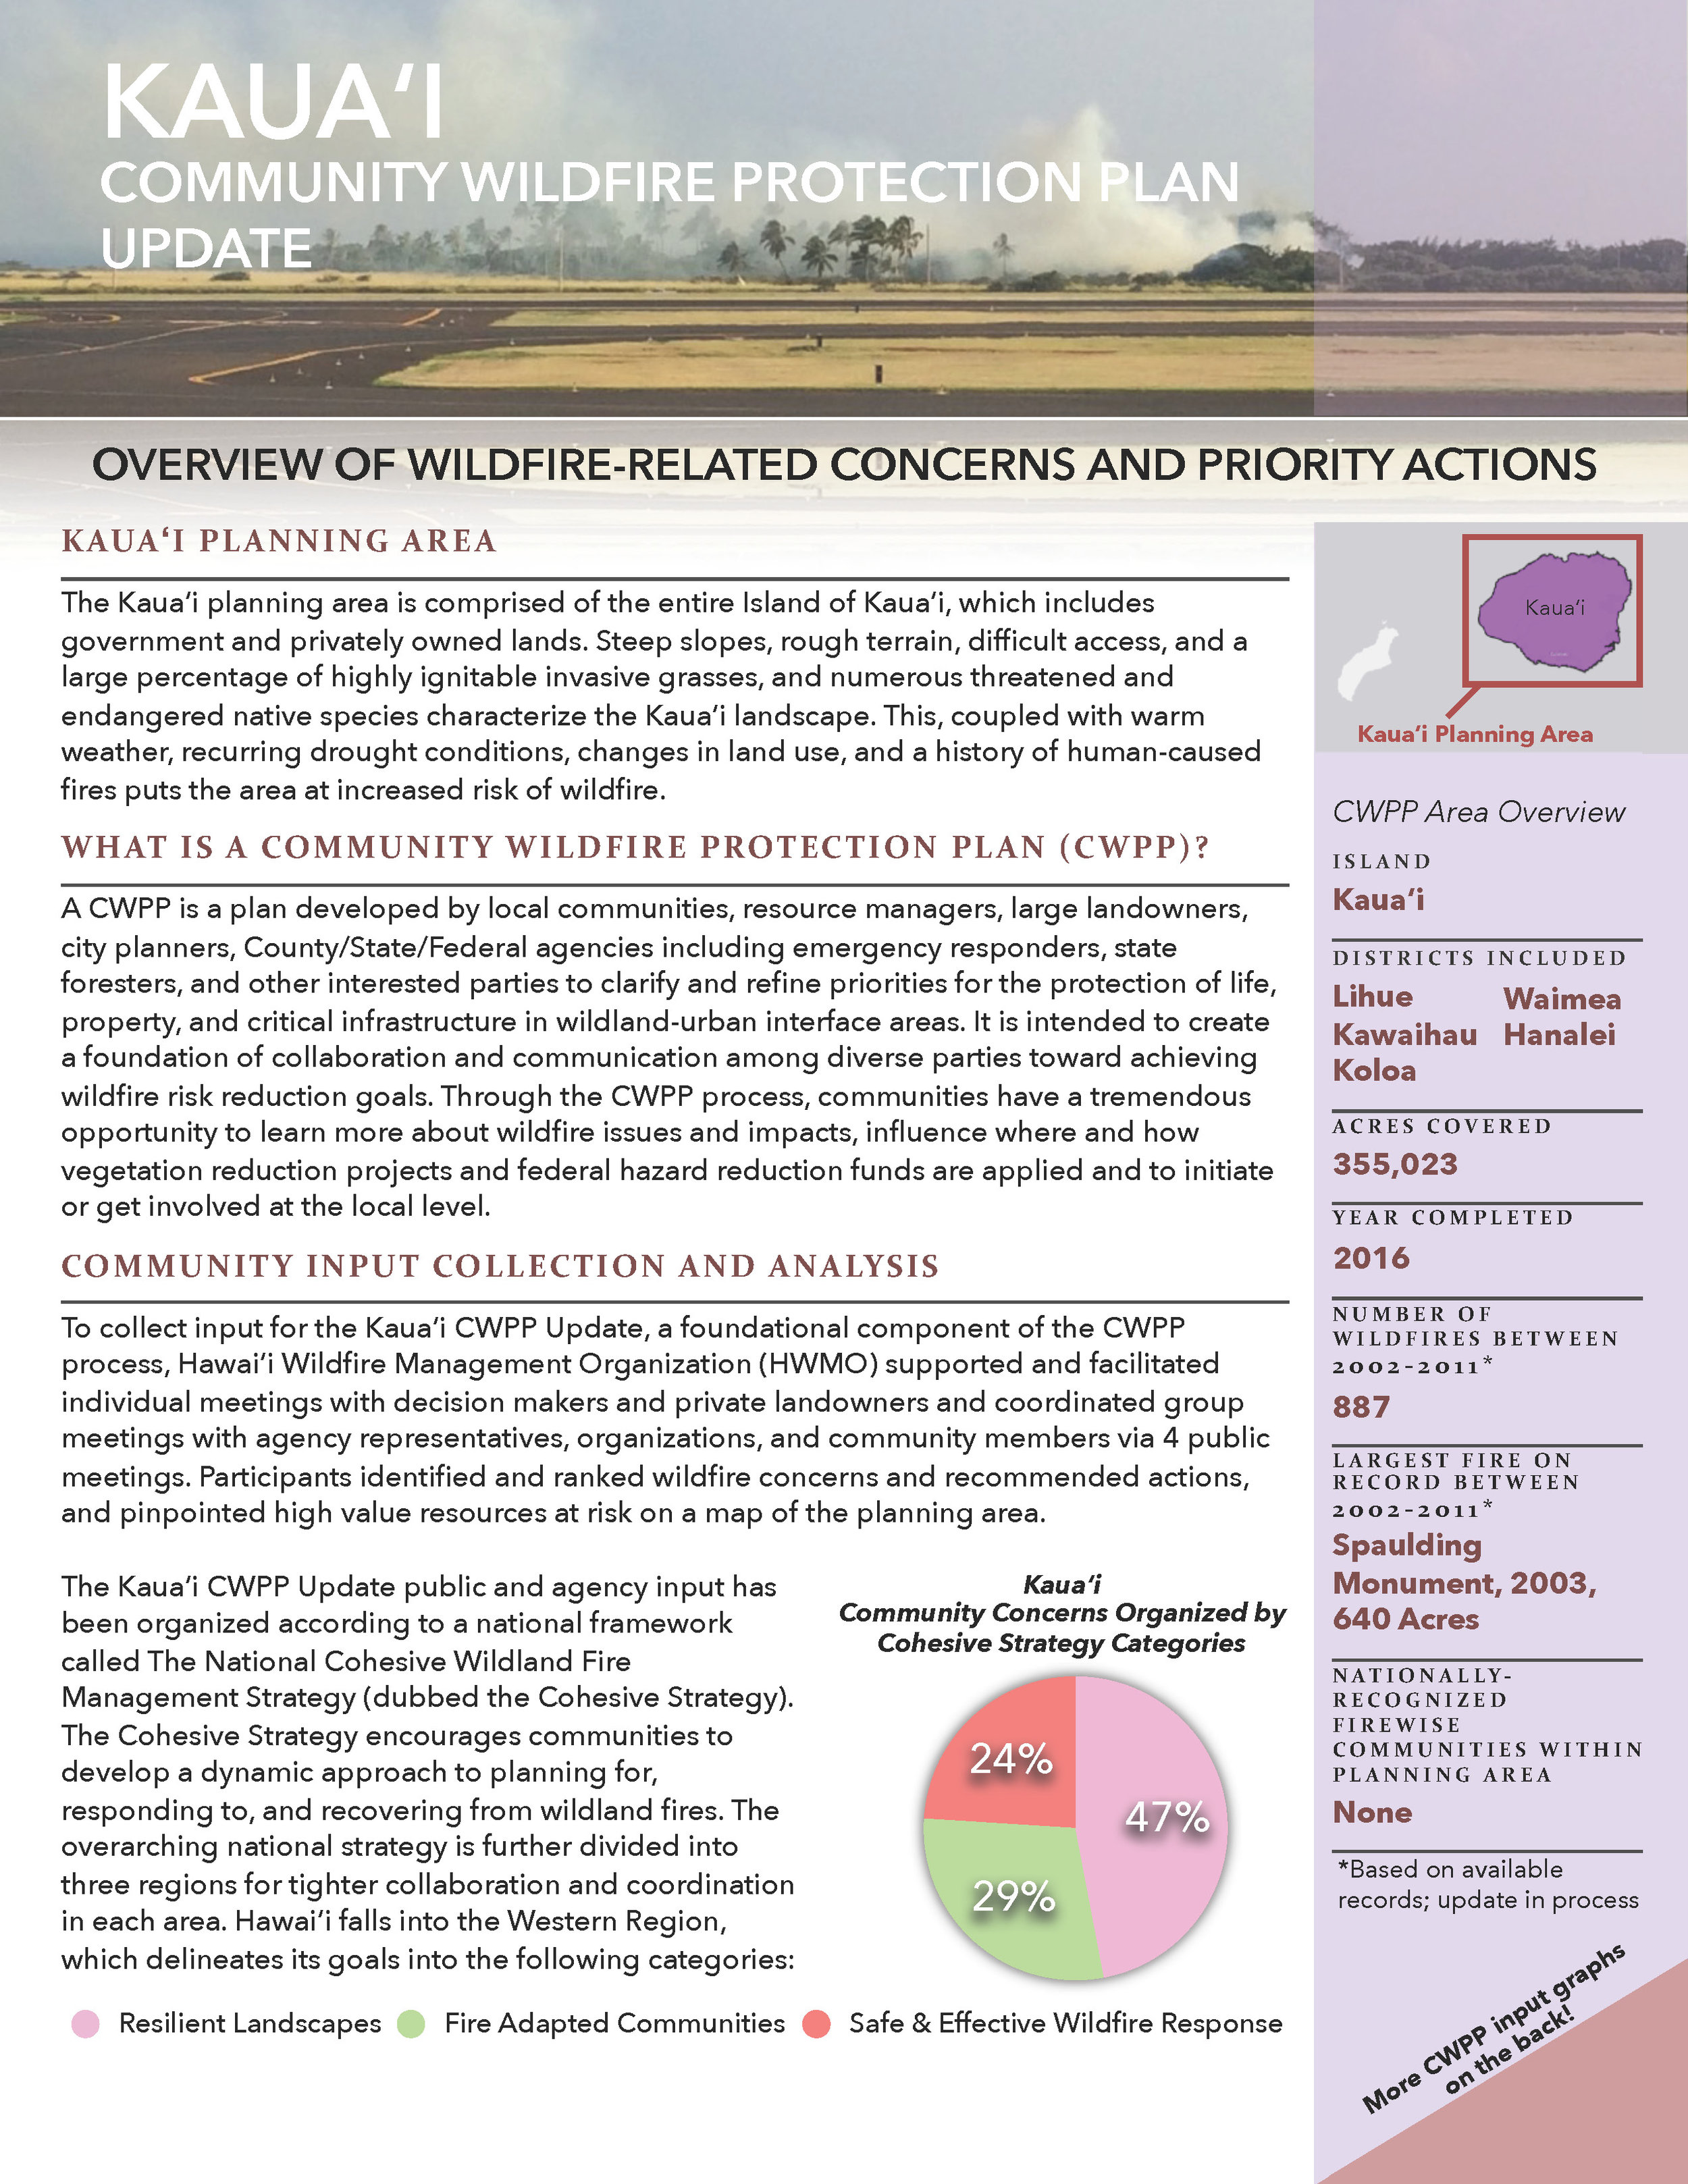 2018_4_18_CWPP Concerns and Priorities Overview_Kauai Update_FINAL_HWMO_Page_1.jpg